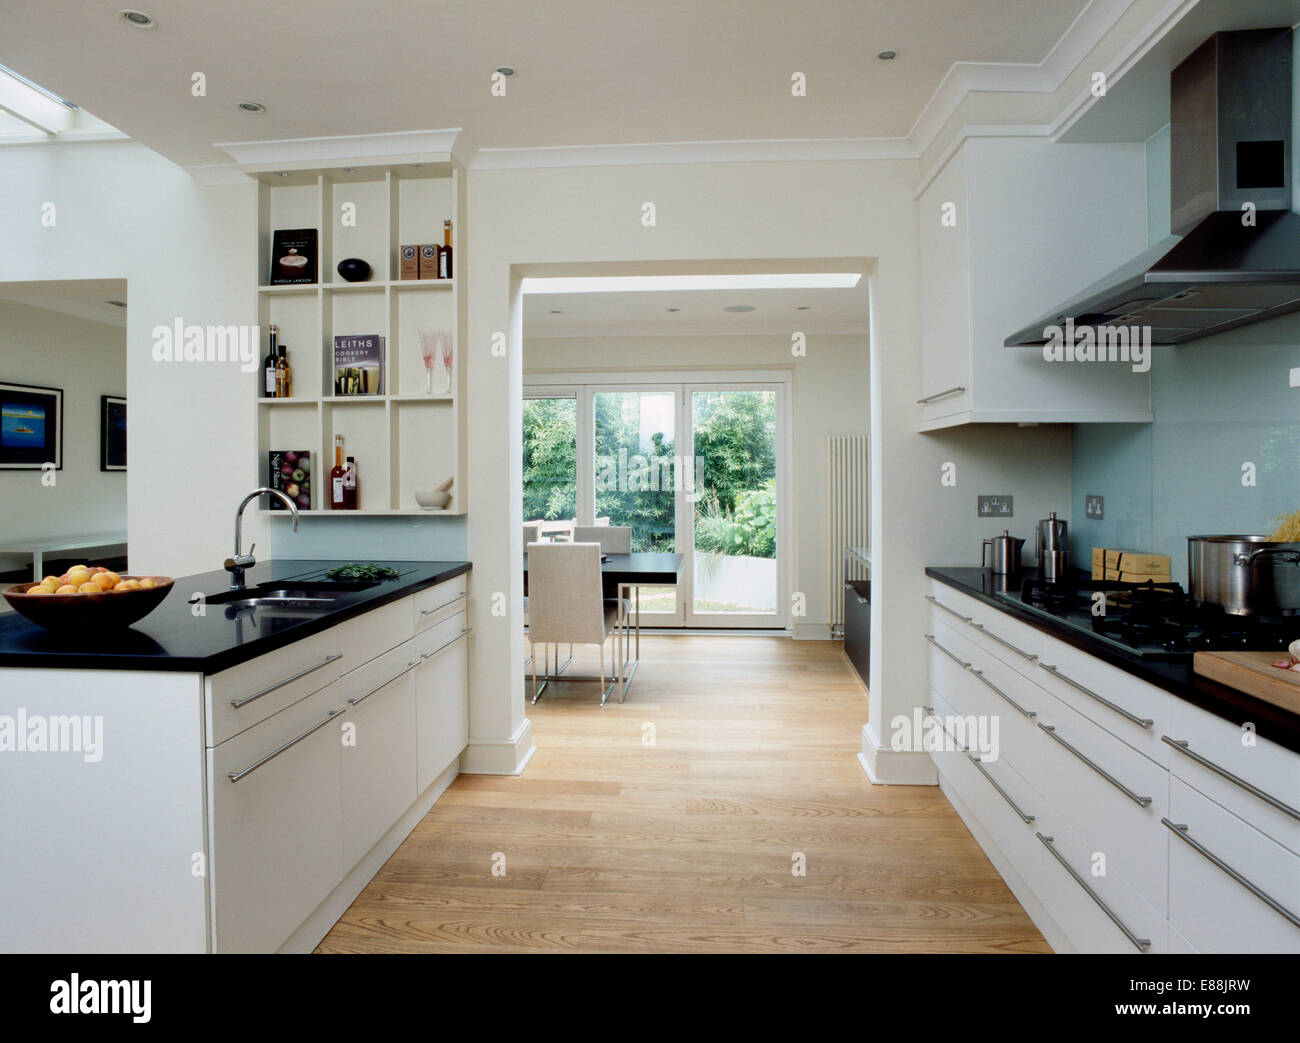 Wooden Flooring In Large Modern Kitchen With Doorway To